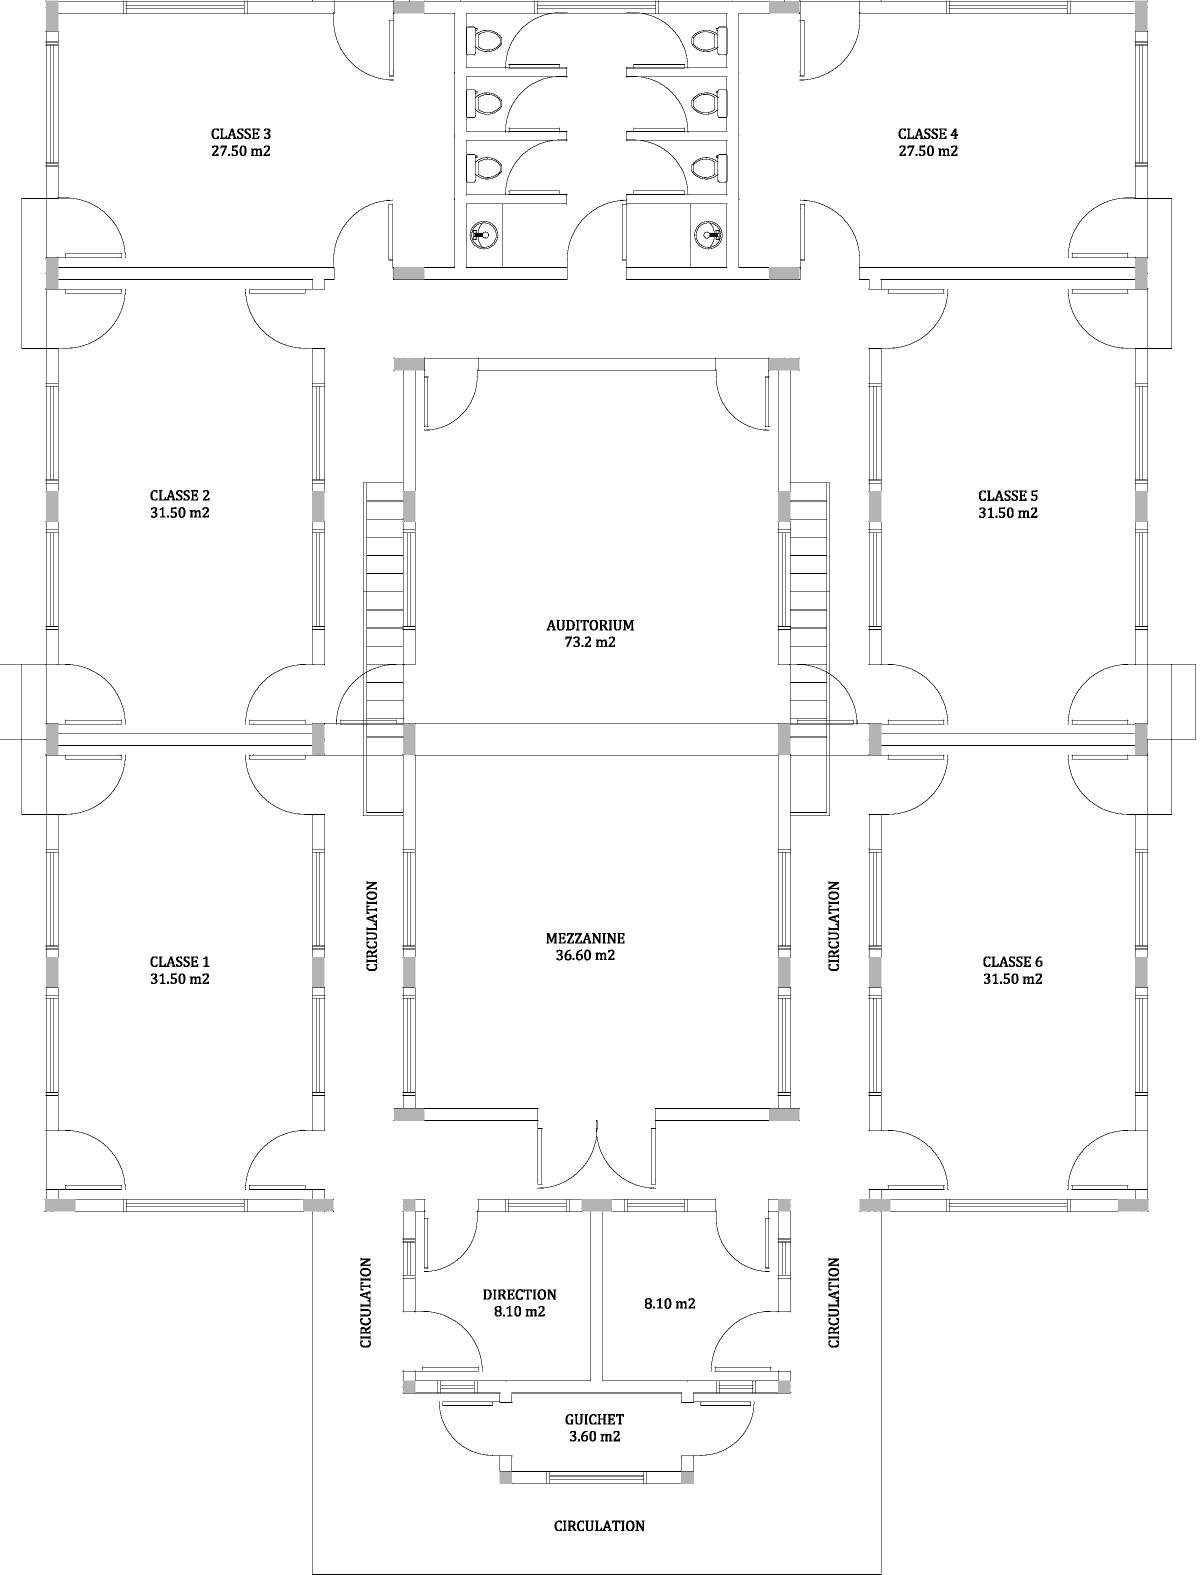 classroom layout of the school